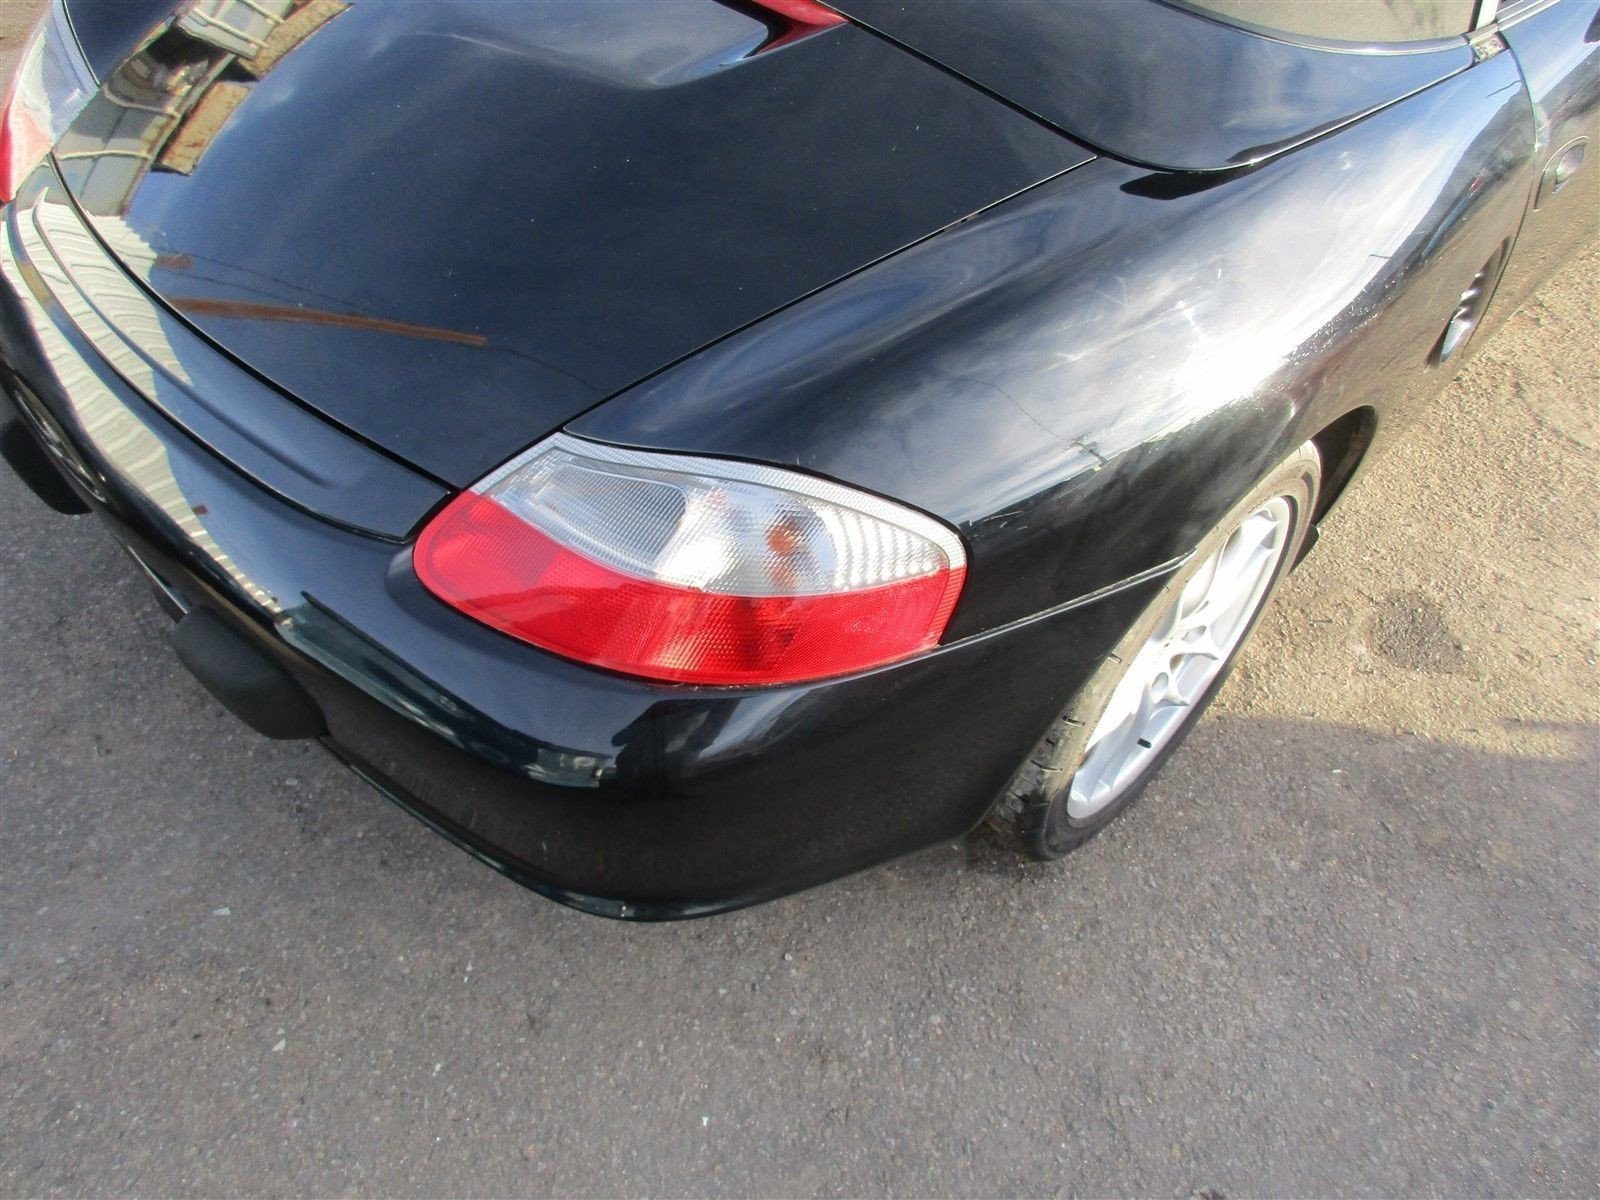 03 Boxster RWD Porsche 986 Parting Out parts car 66,715